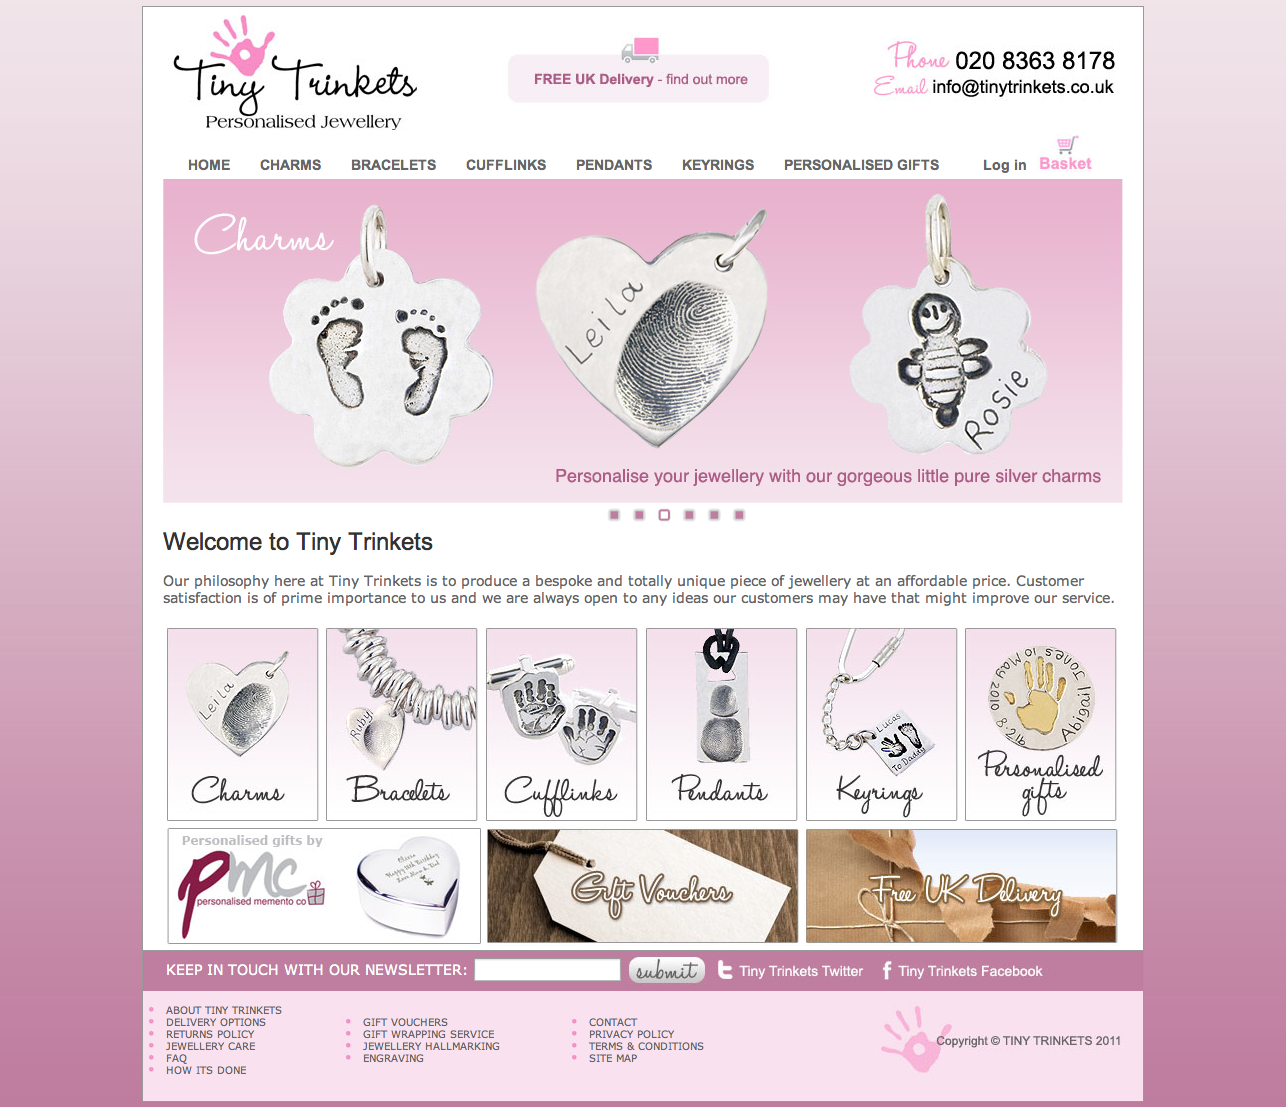 Tiny Trinkets Personalised Jewellery